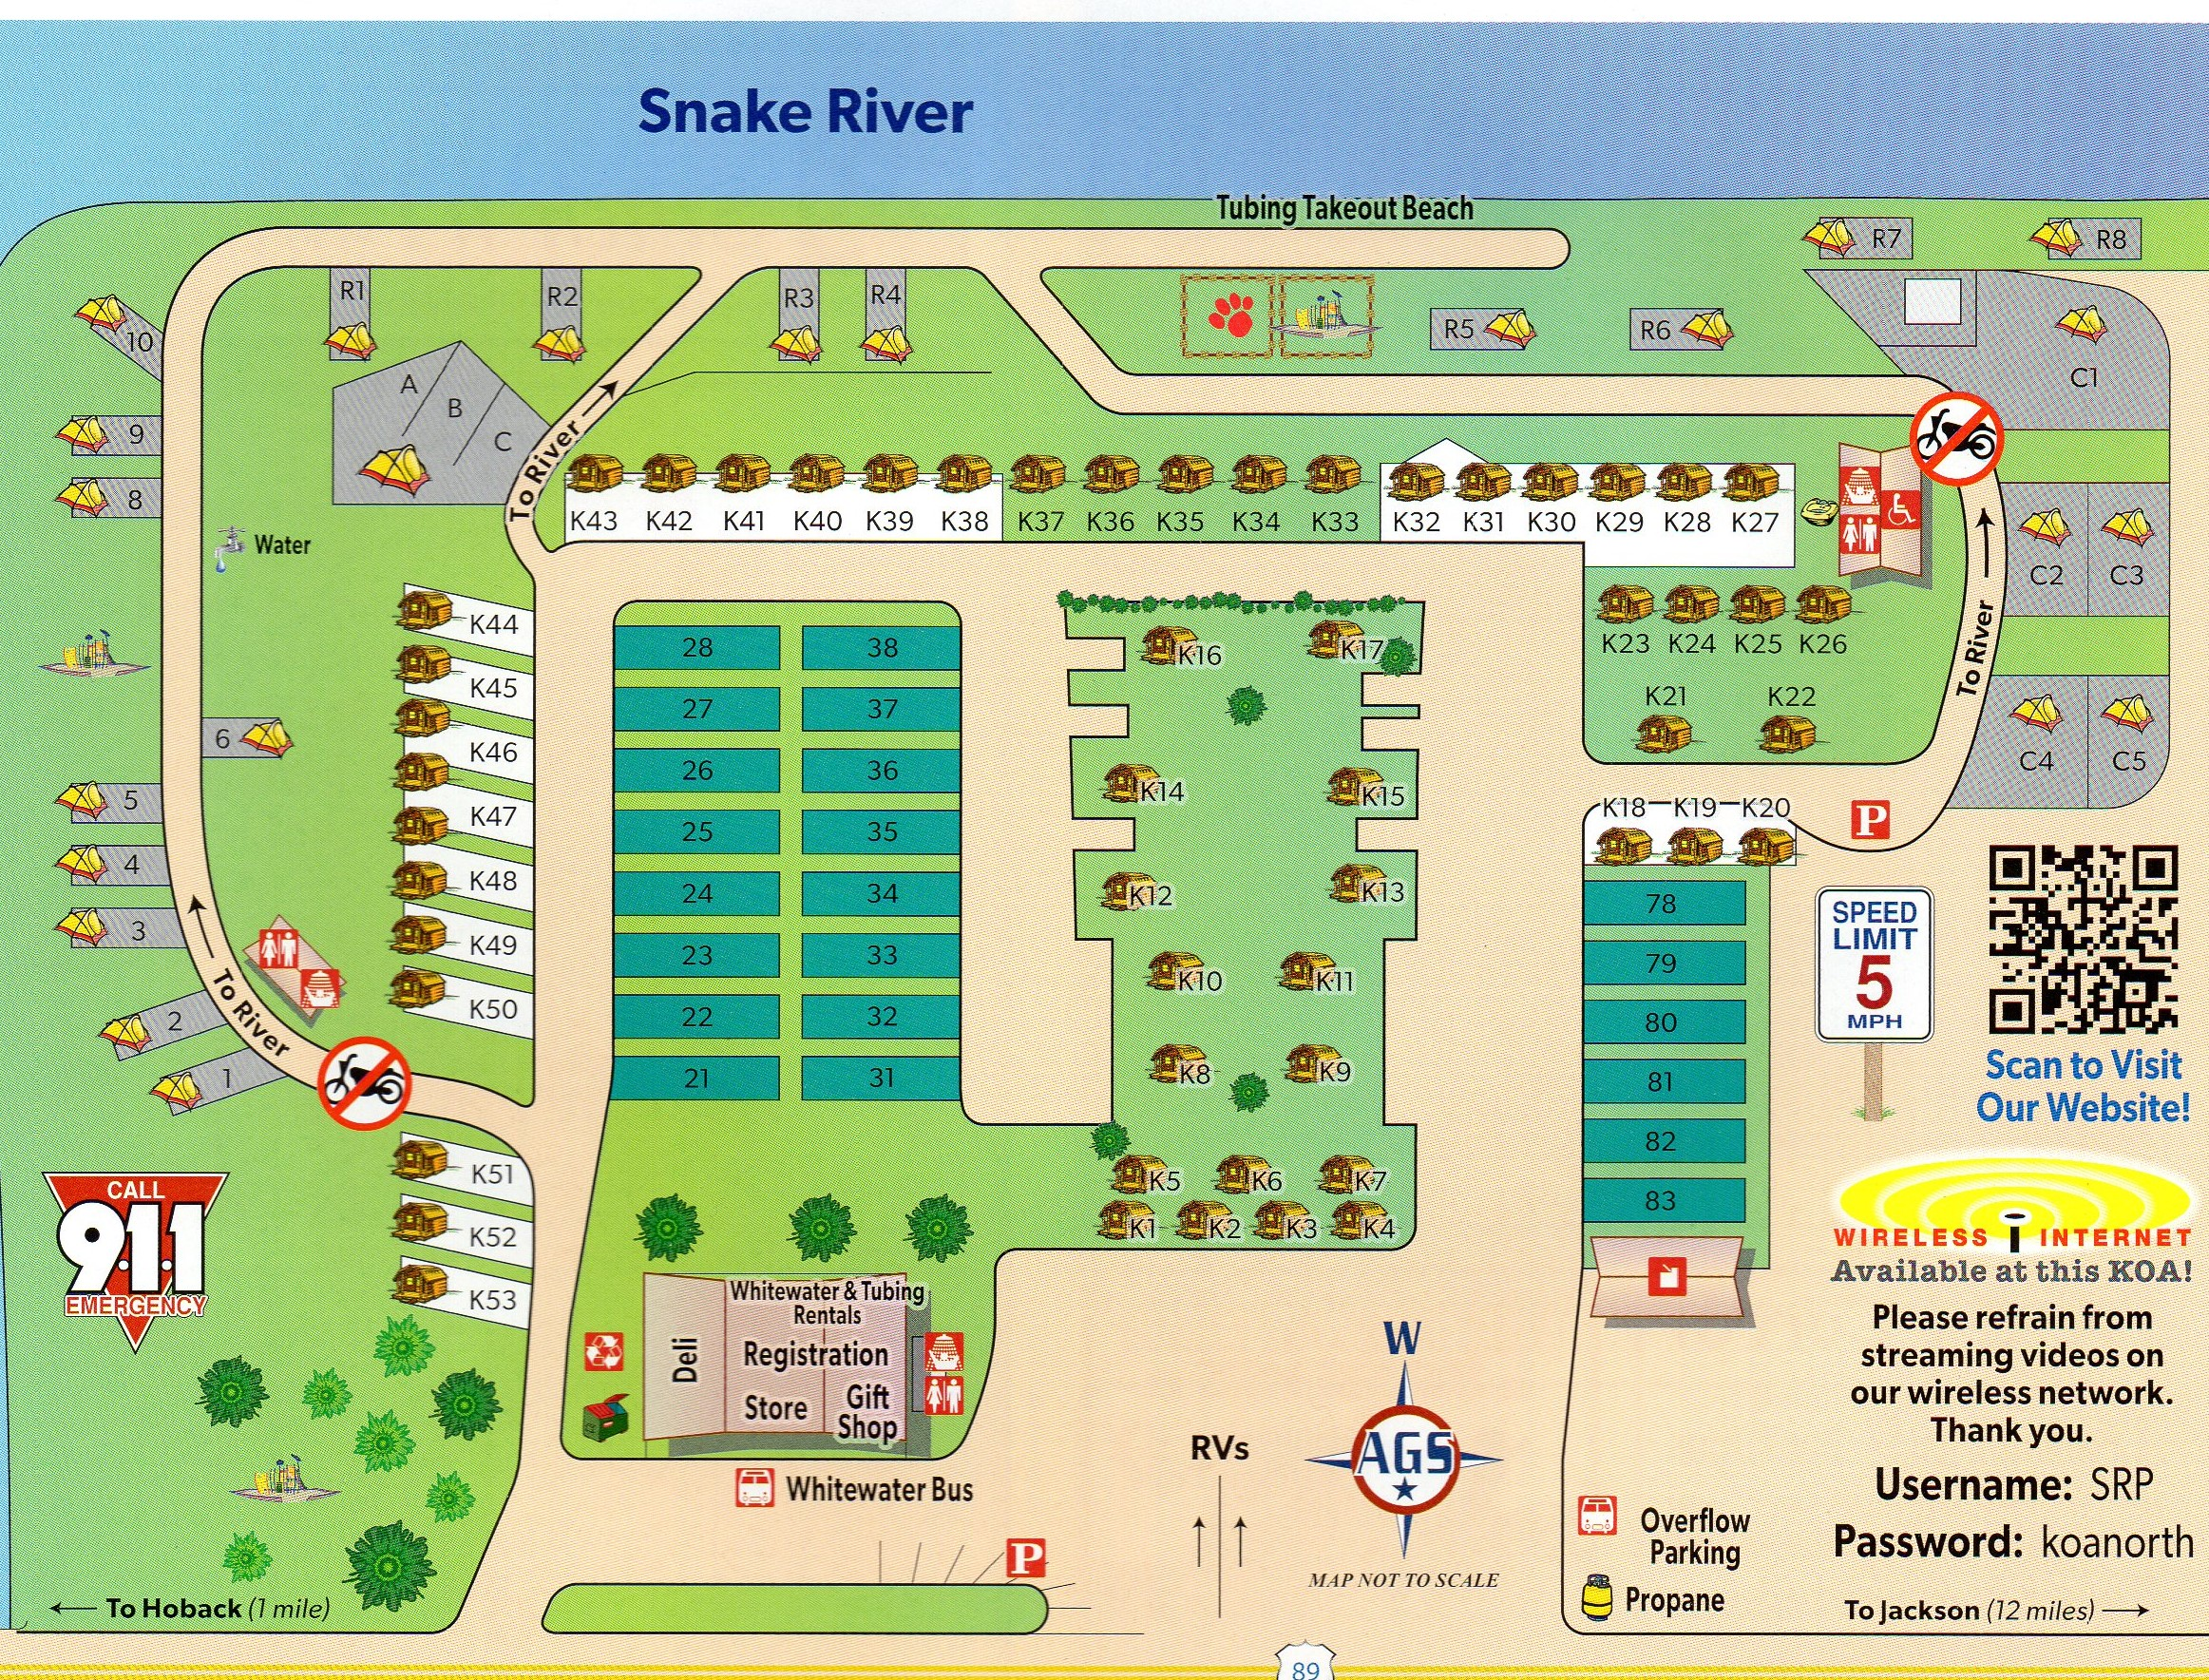 50148sitemap28be67ee 6dde 4ec3 938a be68727593a4 jackson, wyoming campground jackson hole snake river koa  at reclaimingppi.co